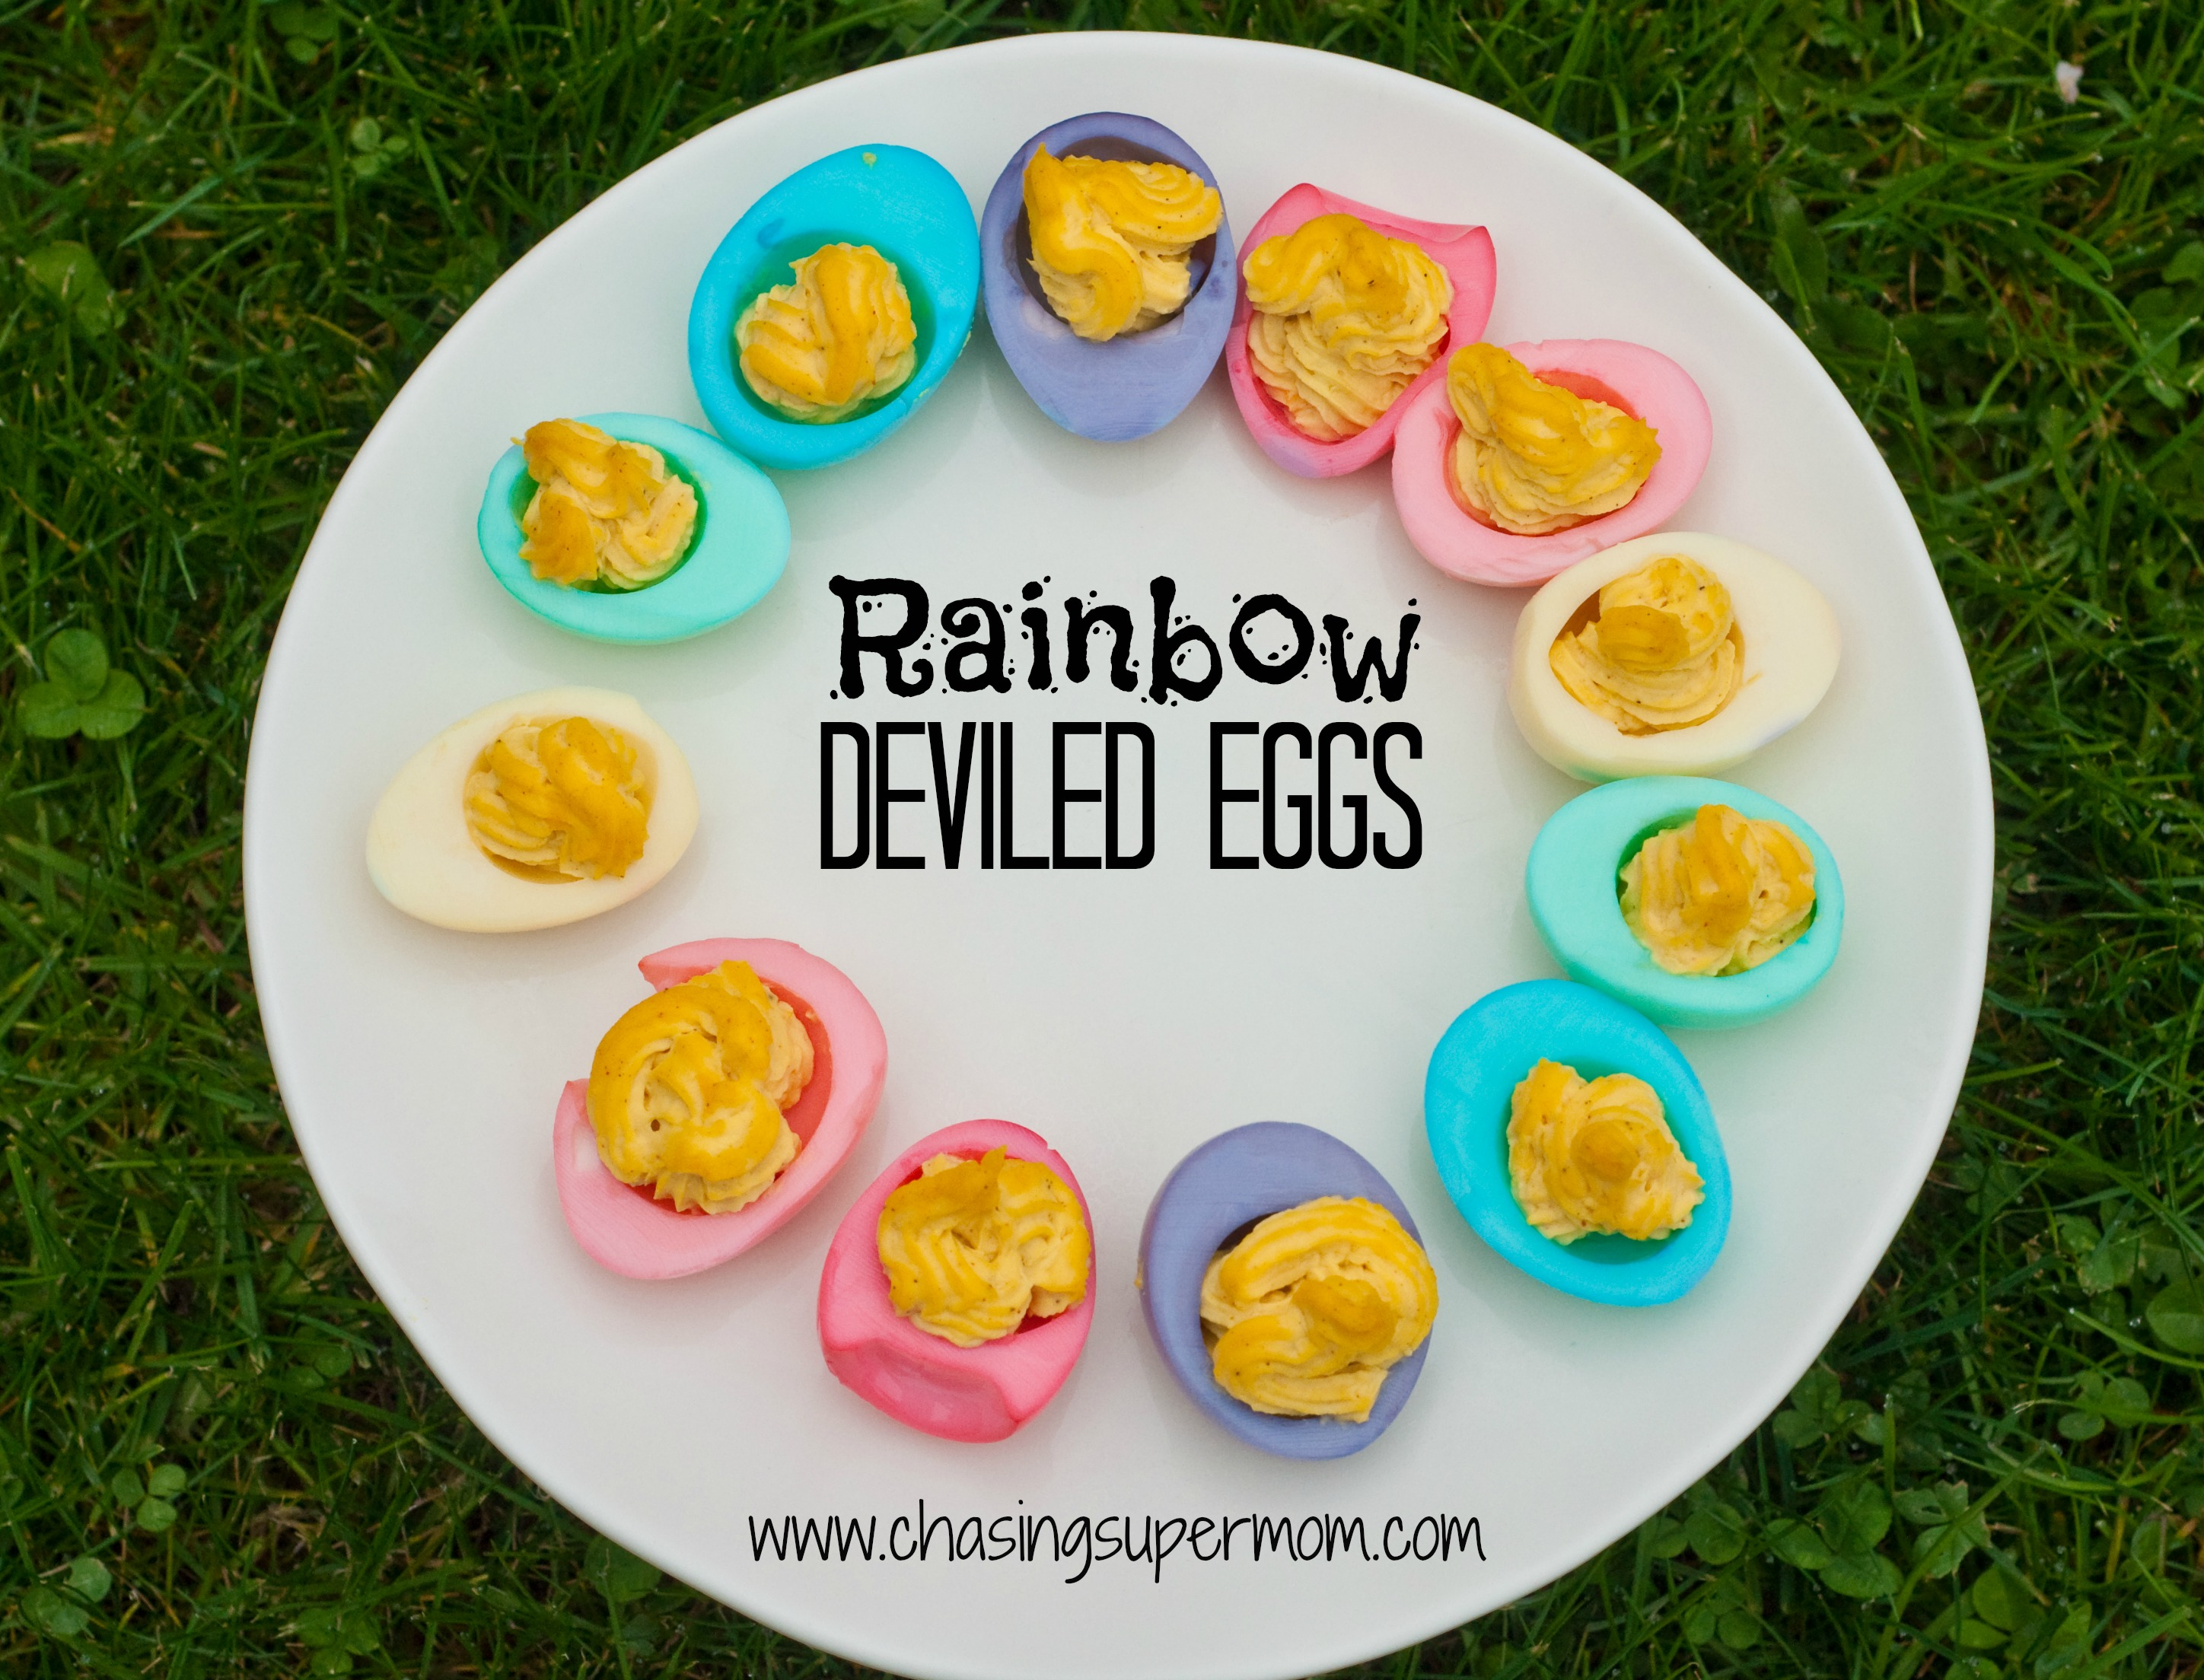 Rainbow Deviled Eggs